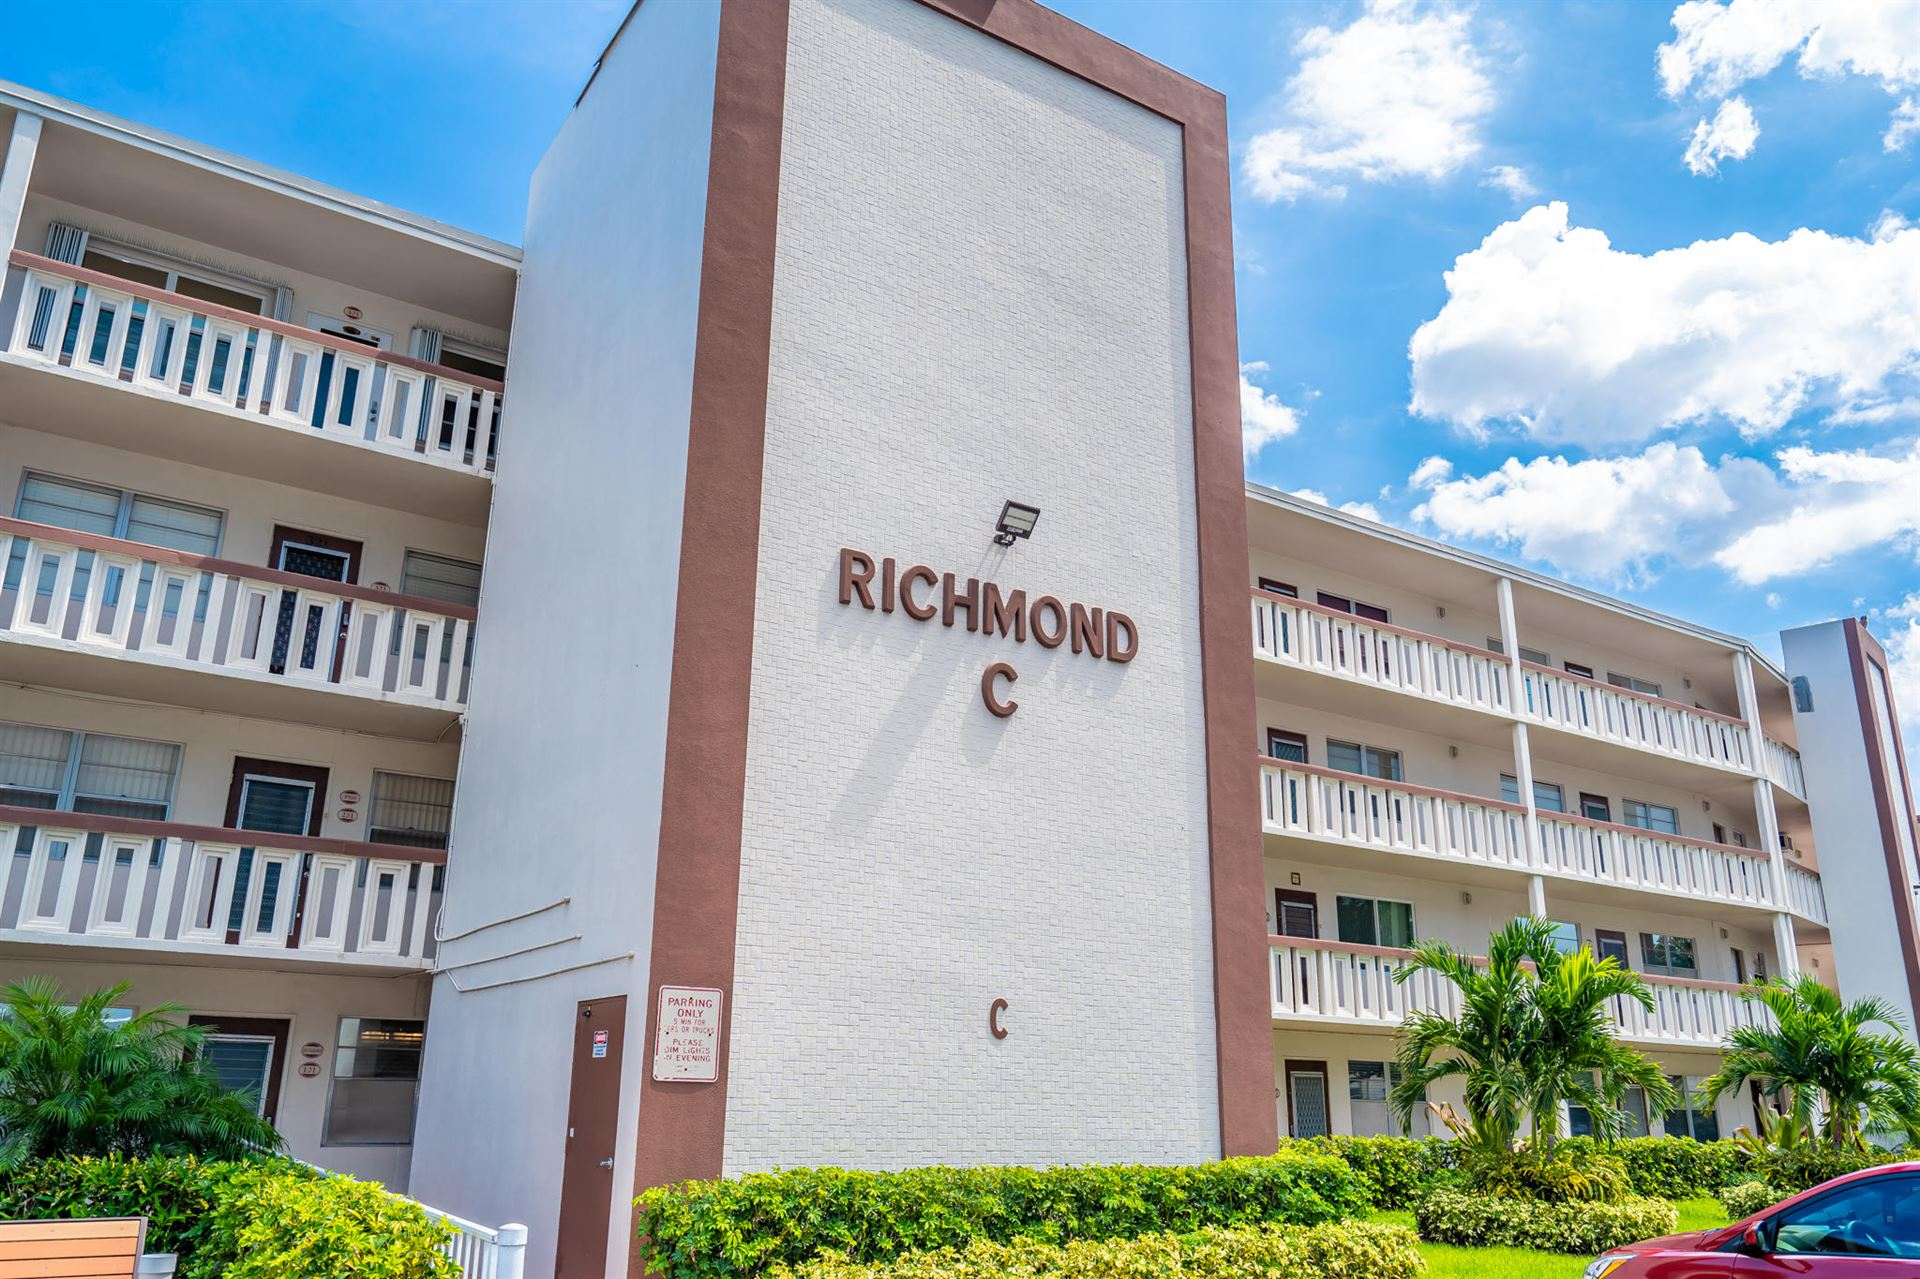 322 Richmond C, Deerfield Beach, FL 33442 - #: RX-10652474